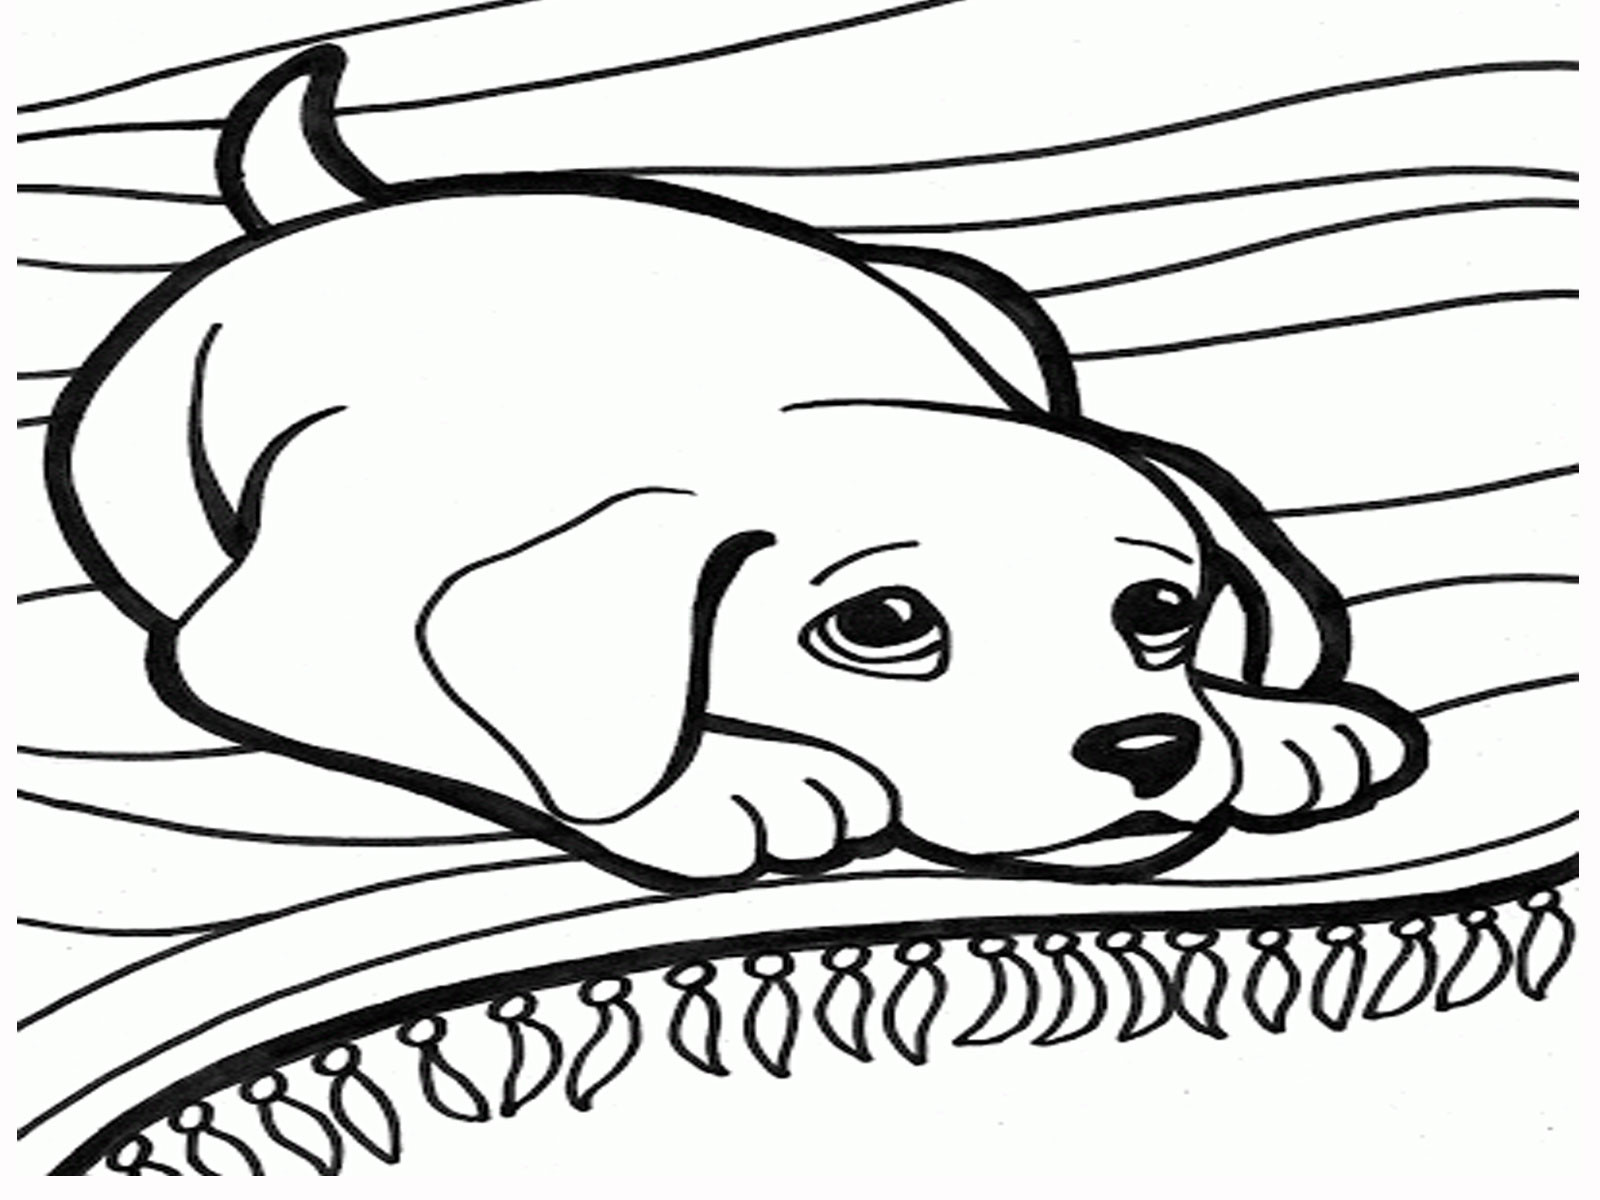 1600x1200 Dog Dogs Coloring Pages For Adults Justcolor In Wagashiya